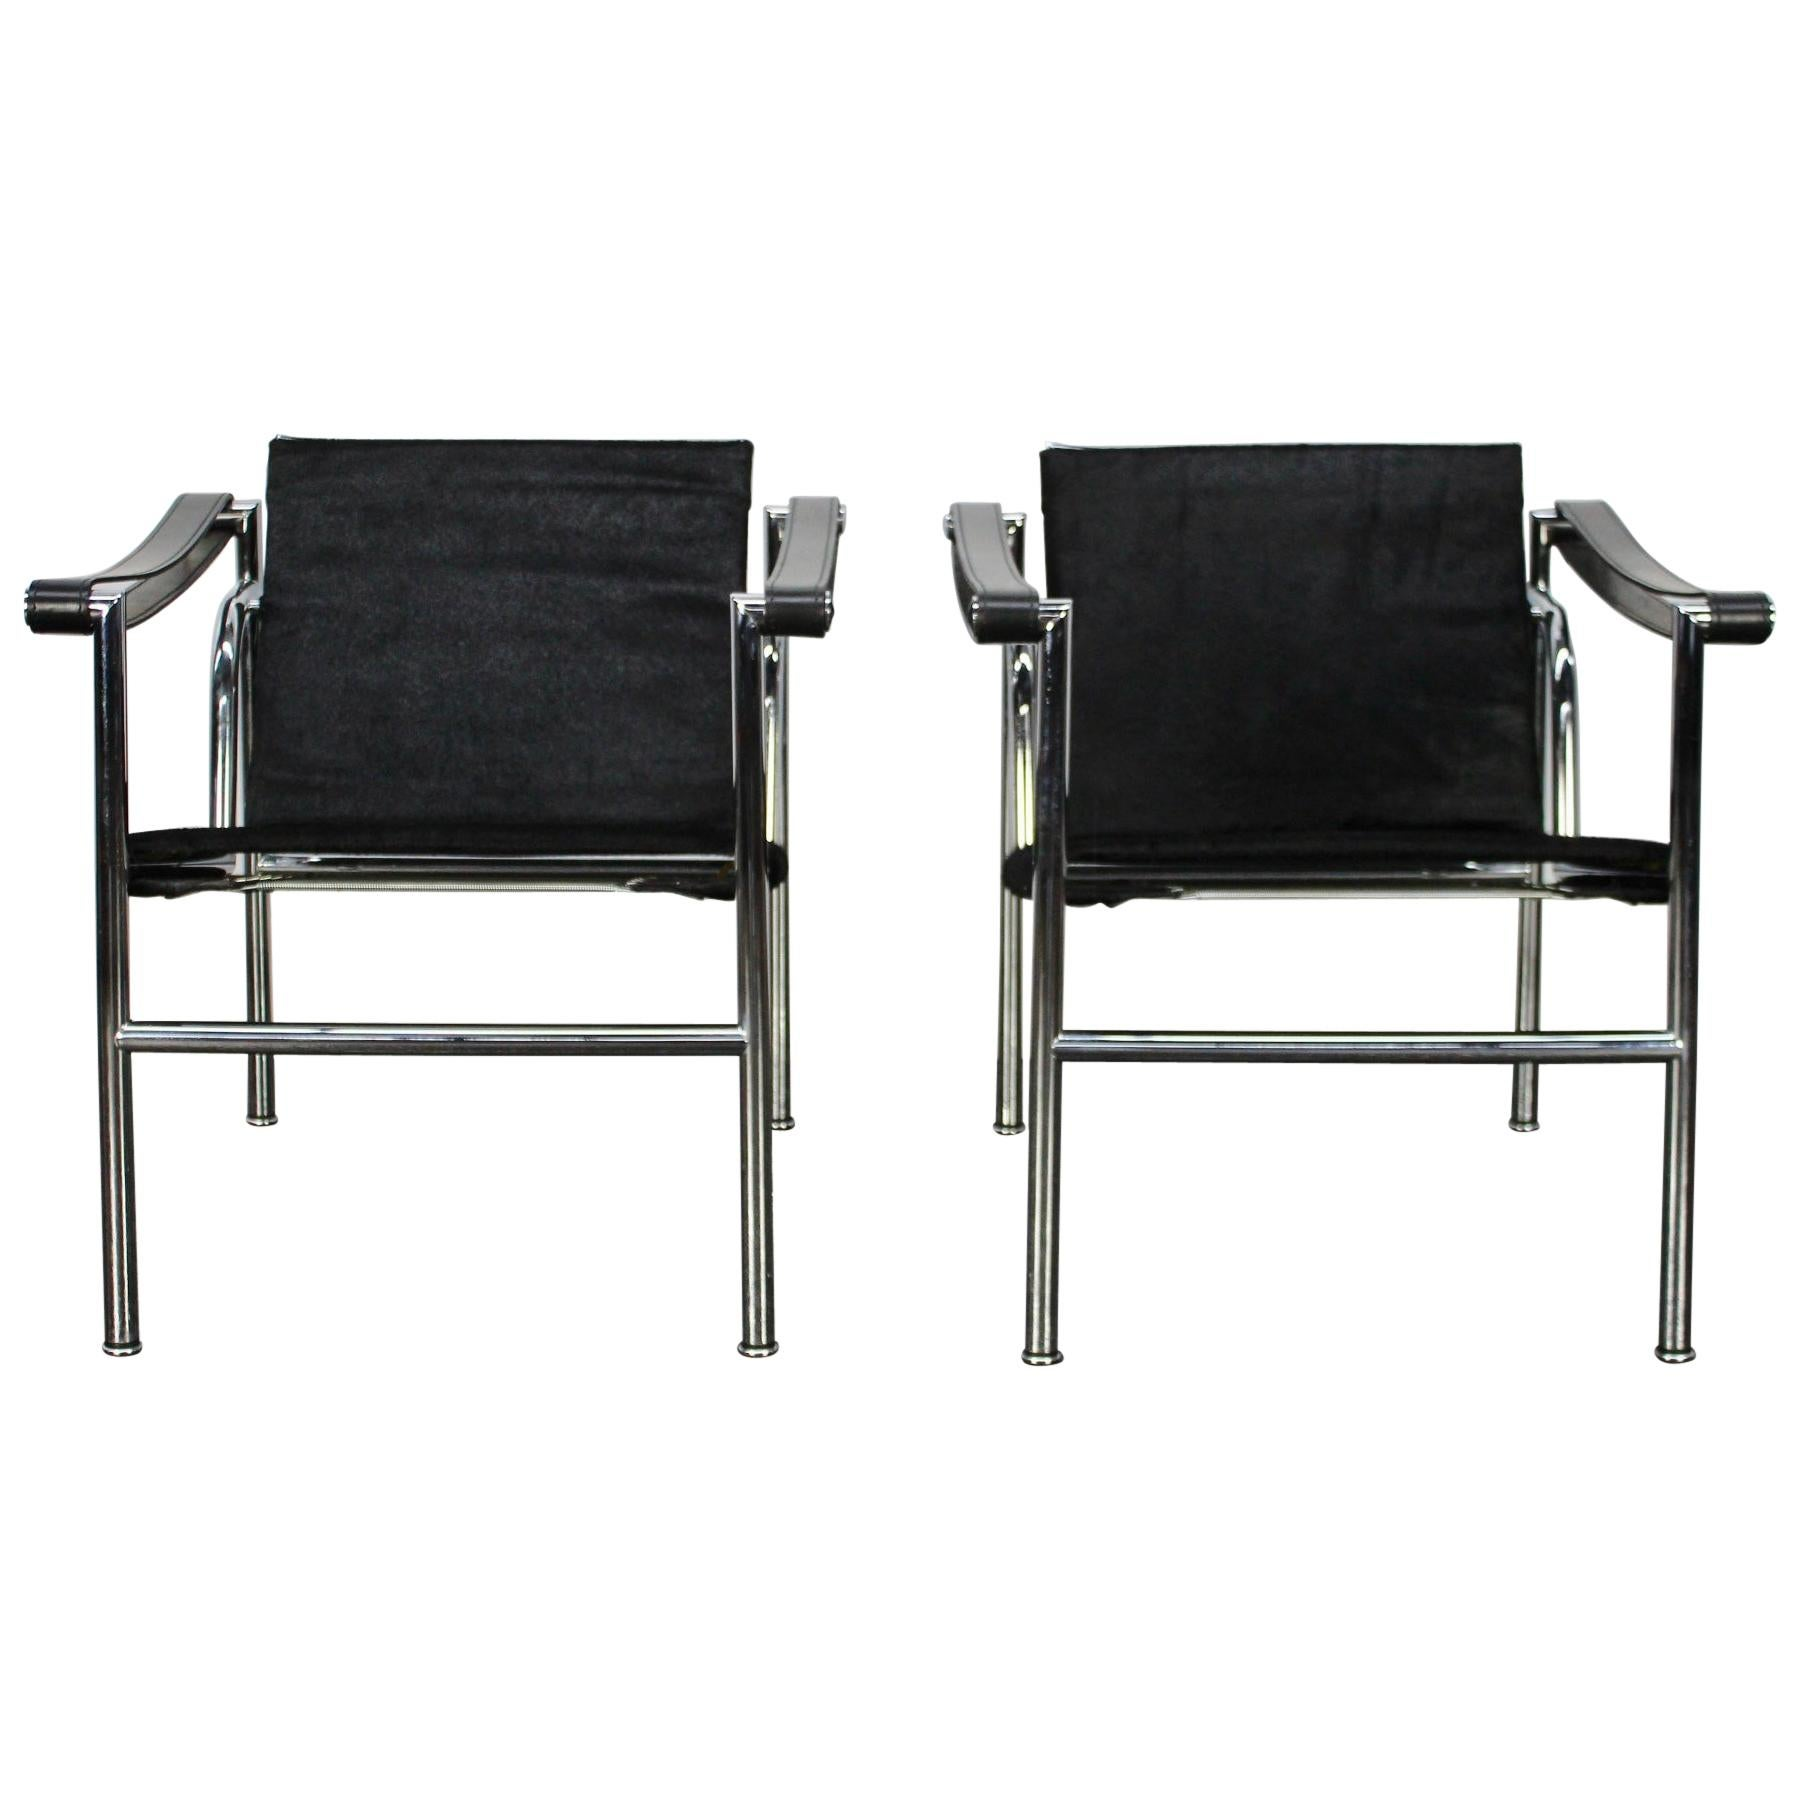 "Lc2 Le Corbusier Cassina Occasion pair of cassina ""lc1"" armchairs in black ""ponyskin"" leather and chrome"